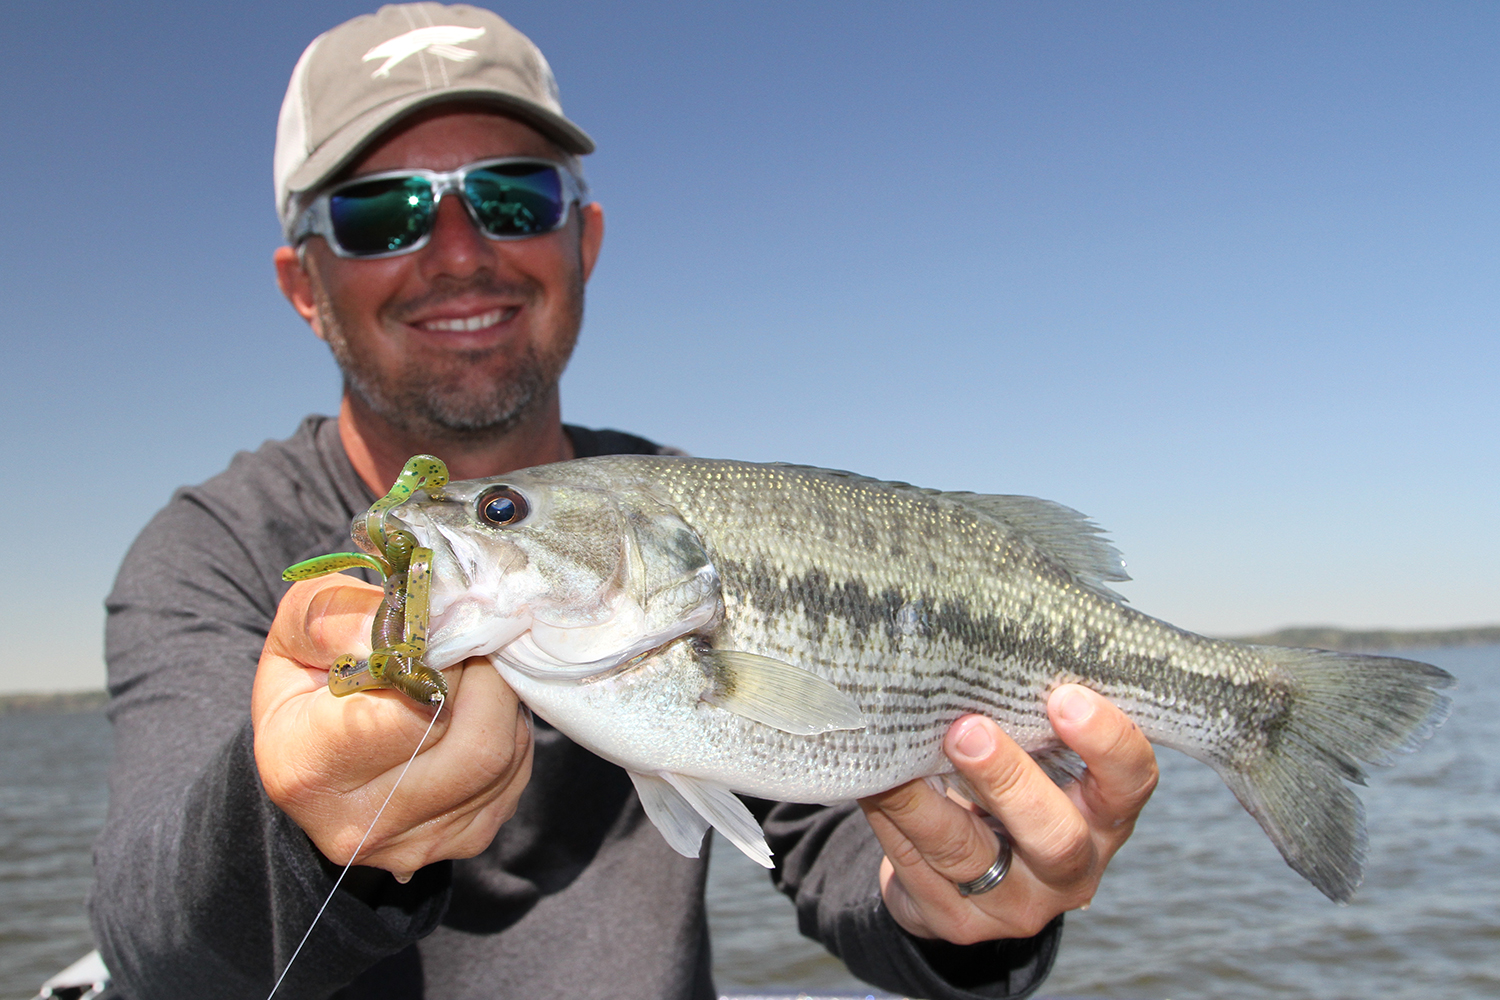 What makes spotted bass different also makes them special, and a lot of fun to catch